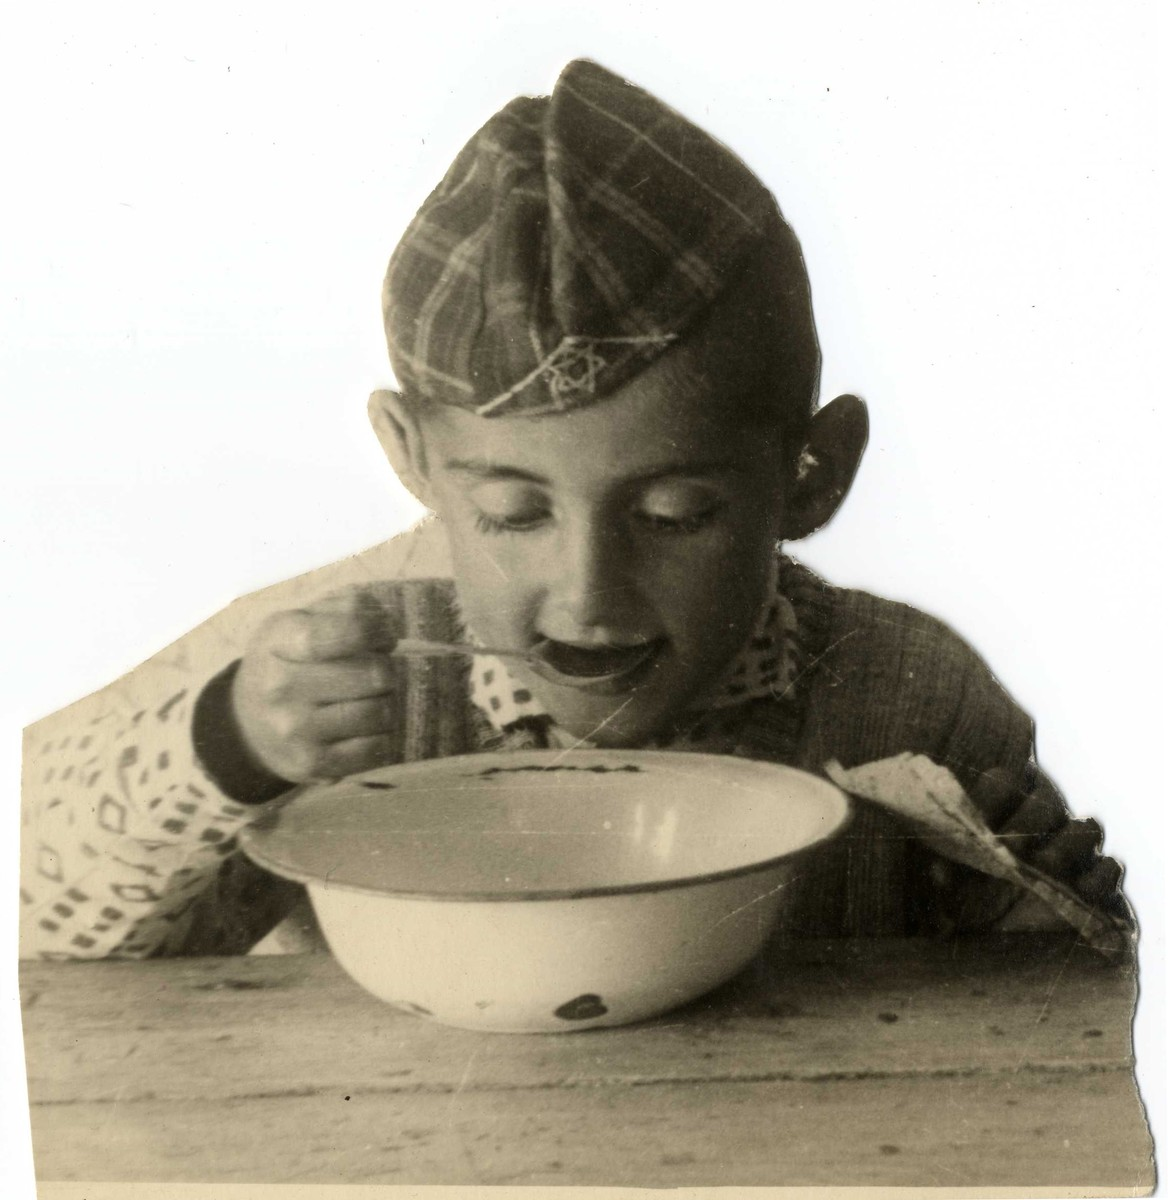 Close-up portrait of a young boy eating soup in the Lodz ghetto.